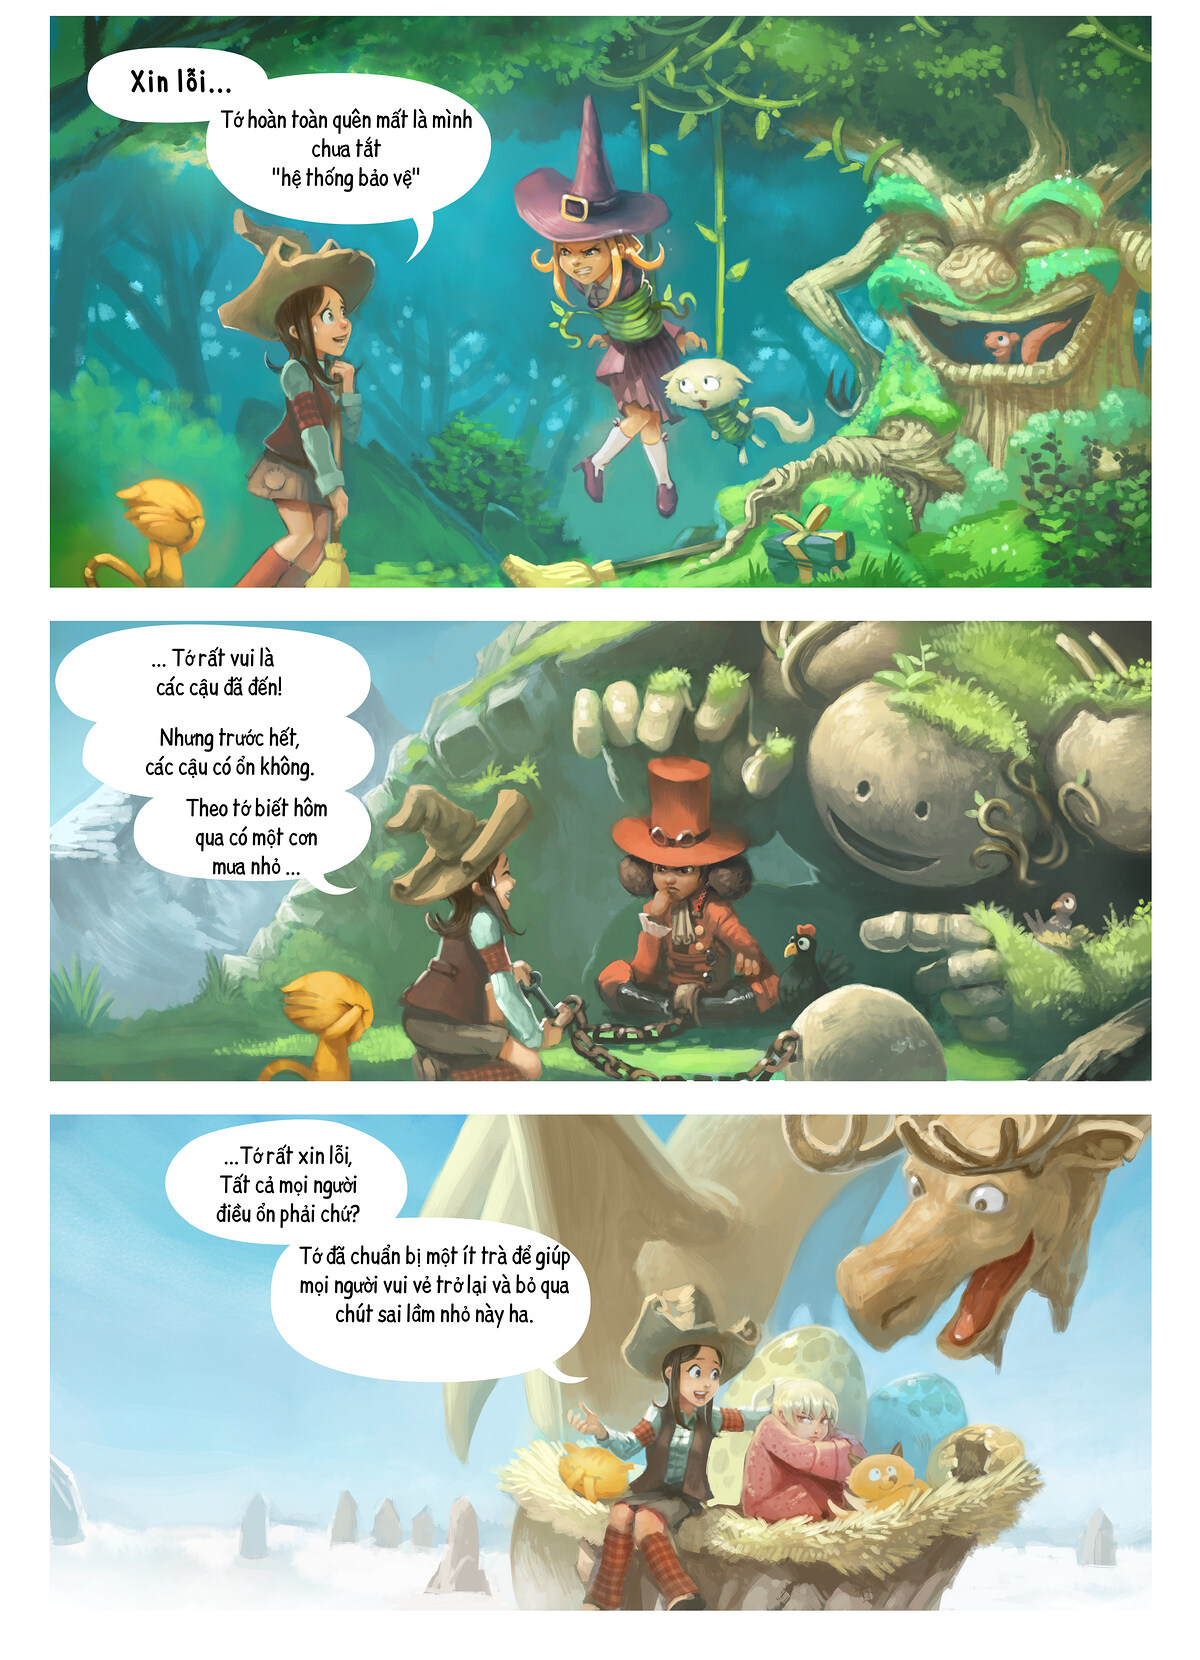 A webcomic page of Pepper&Carrot, Tập 9 [vi], trang 2